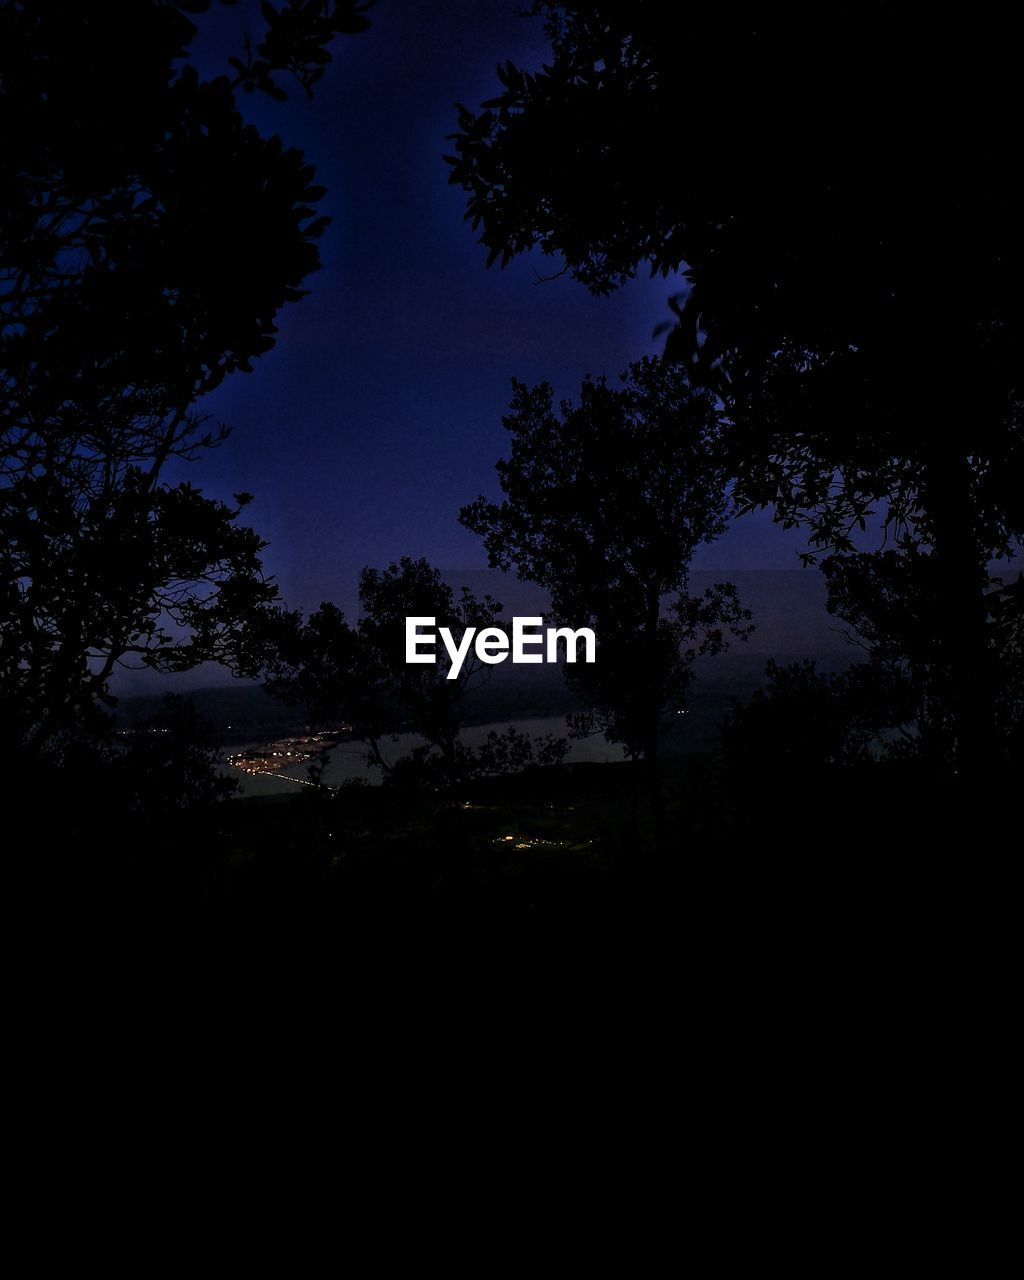 tree, plant, sky, silhouette, no people, nature, beauty in nature, night, tranquility, scenics - nature, growth, tranquil scene, dark, illuminated, outdoors, dusk, land, idyllic, environment, low angle view, moonlight